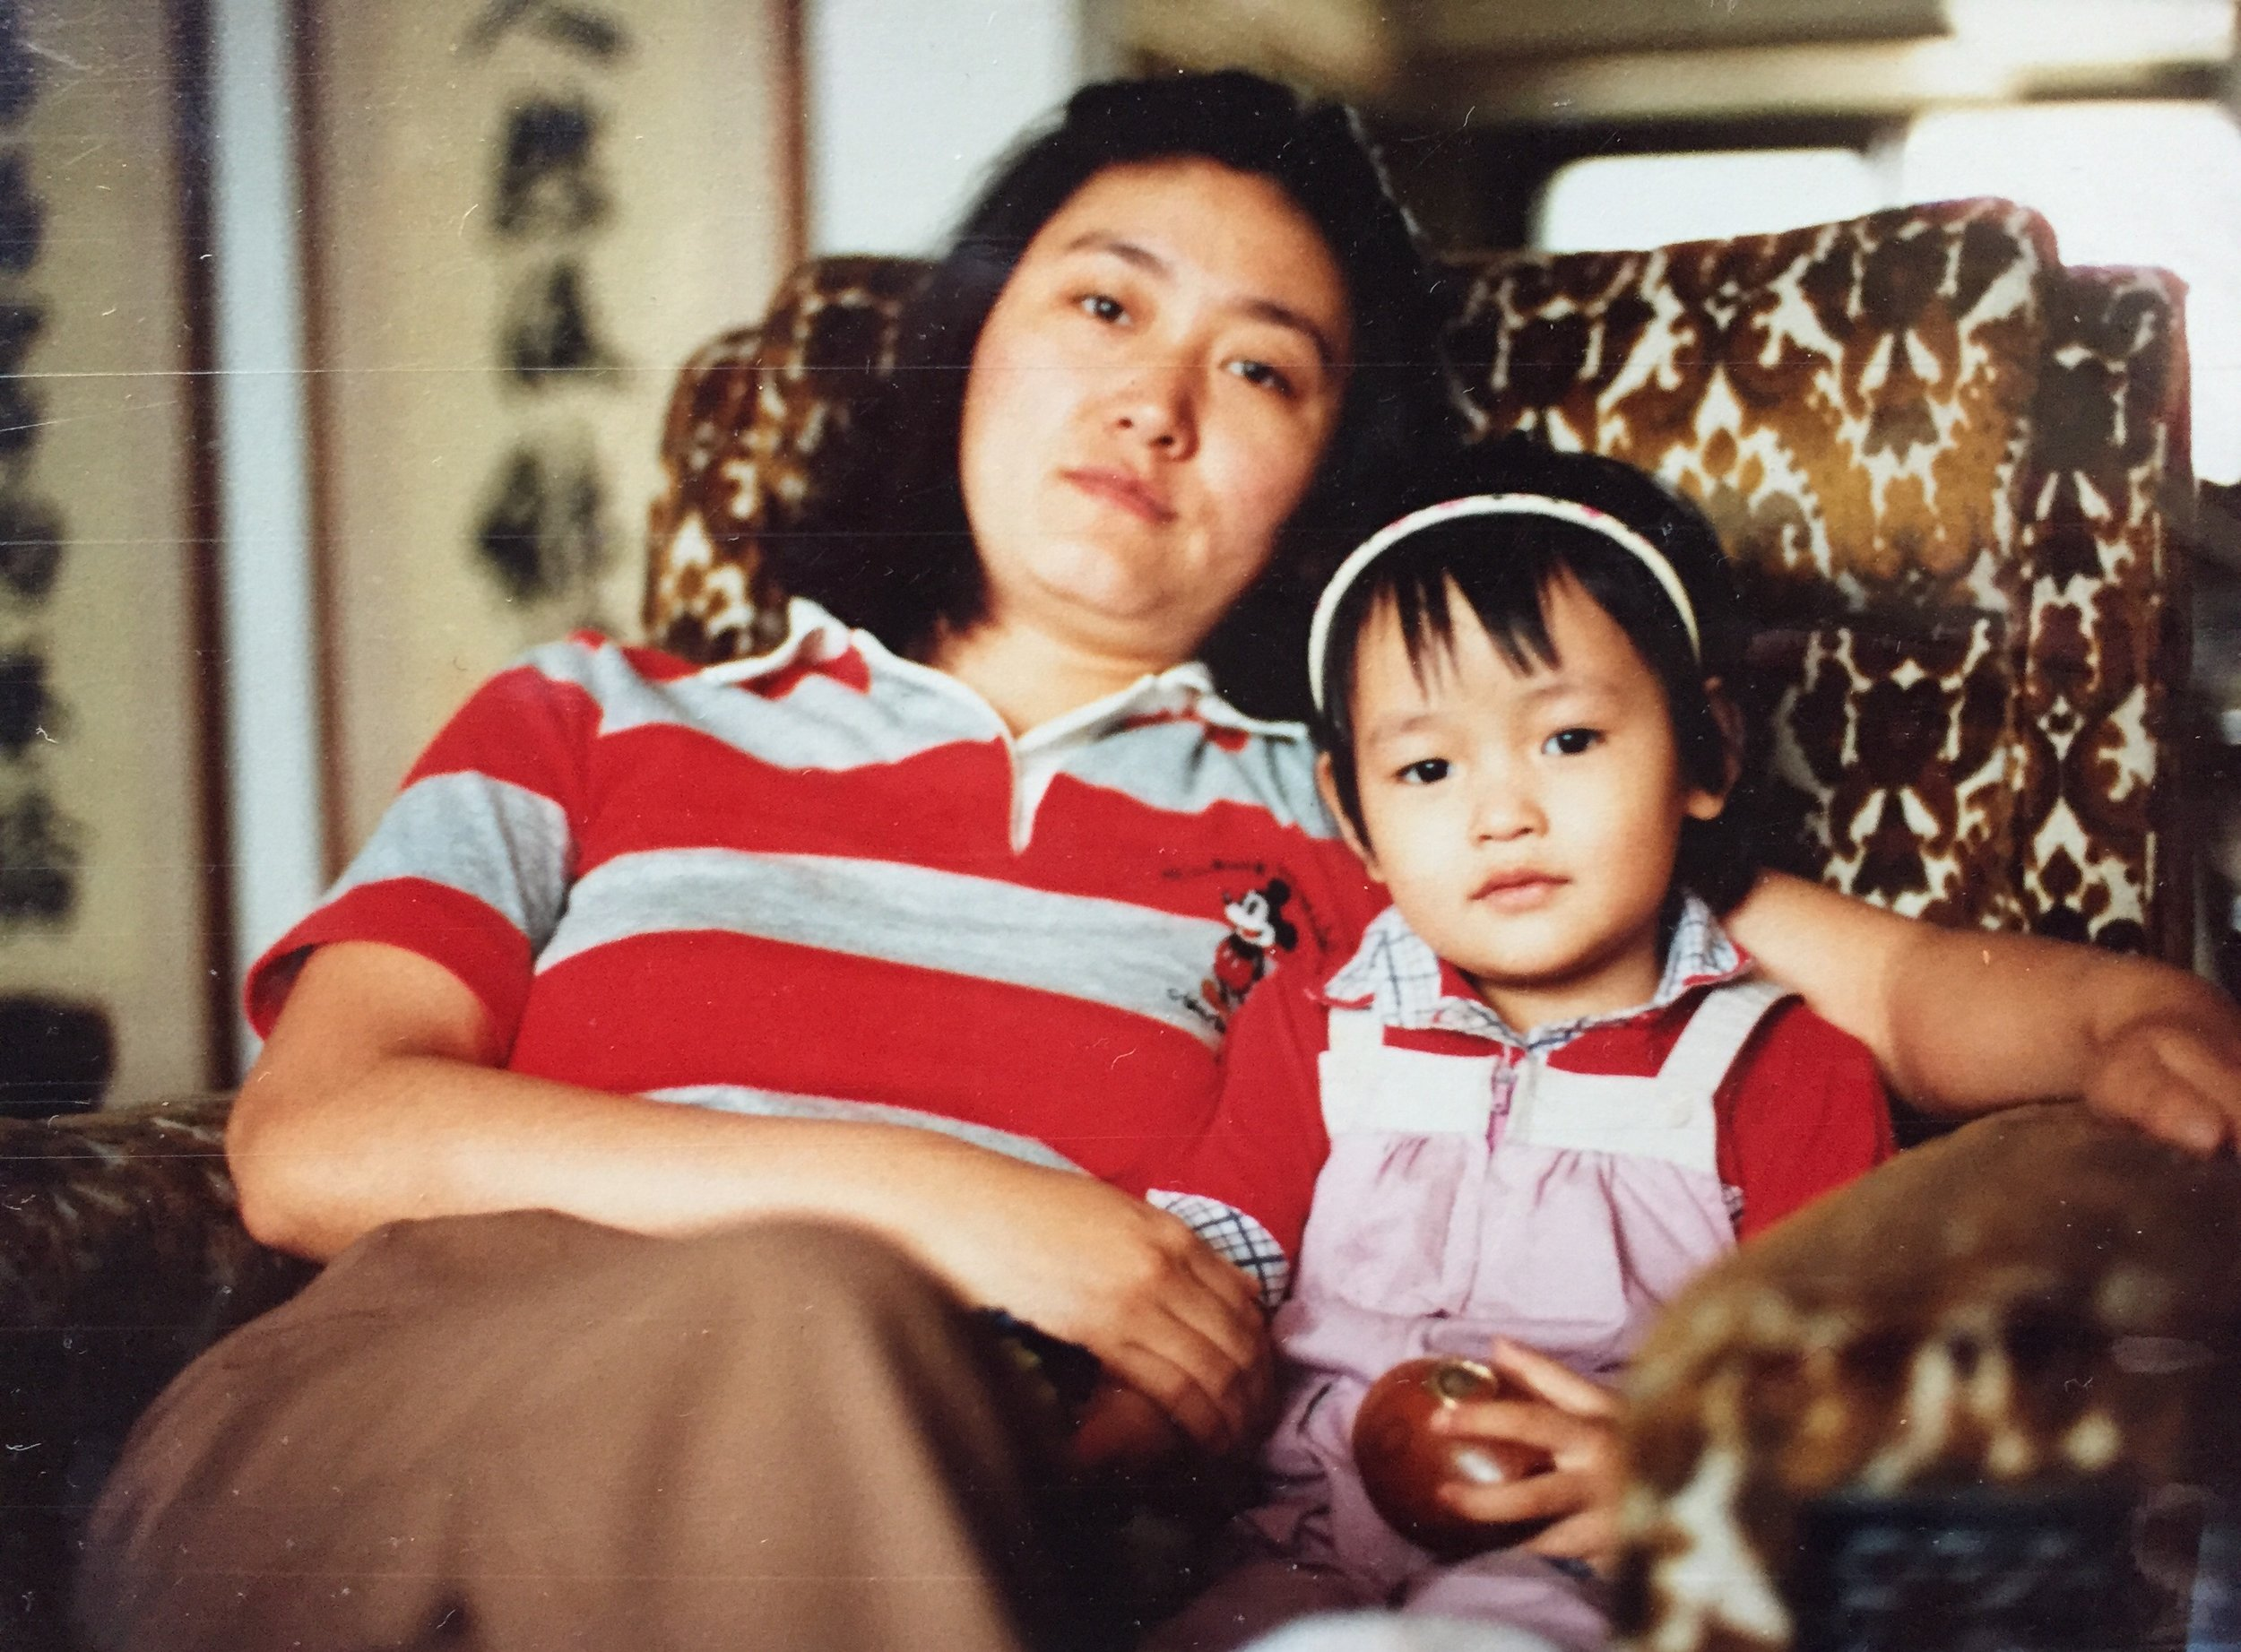 Mama Kim & Jung, 1983  Seoul, South Korea